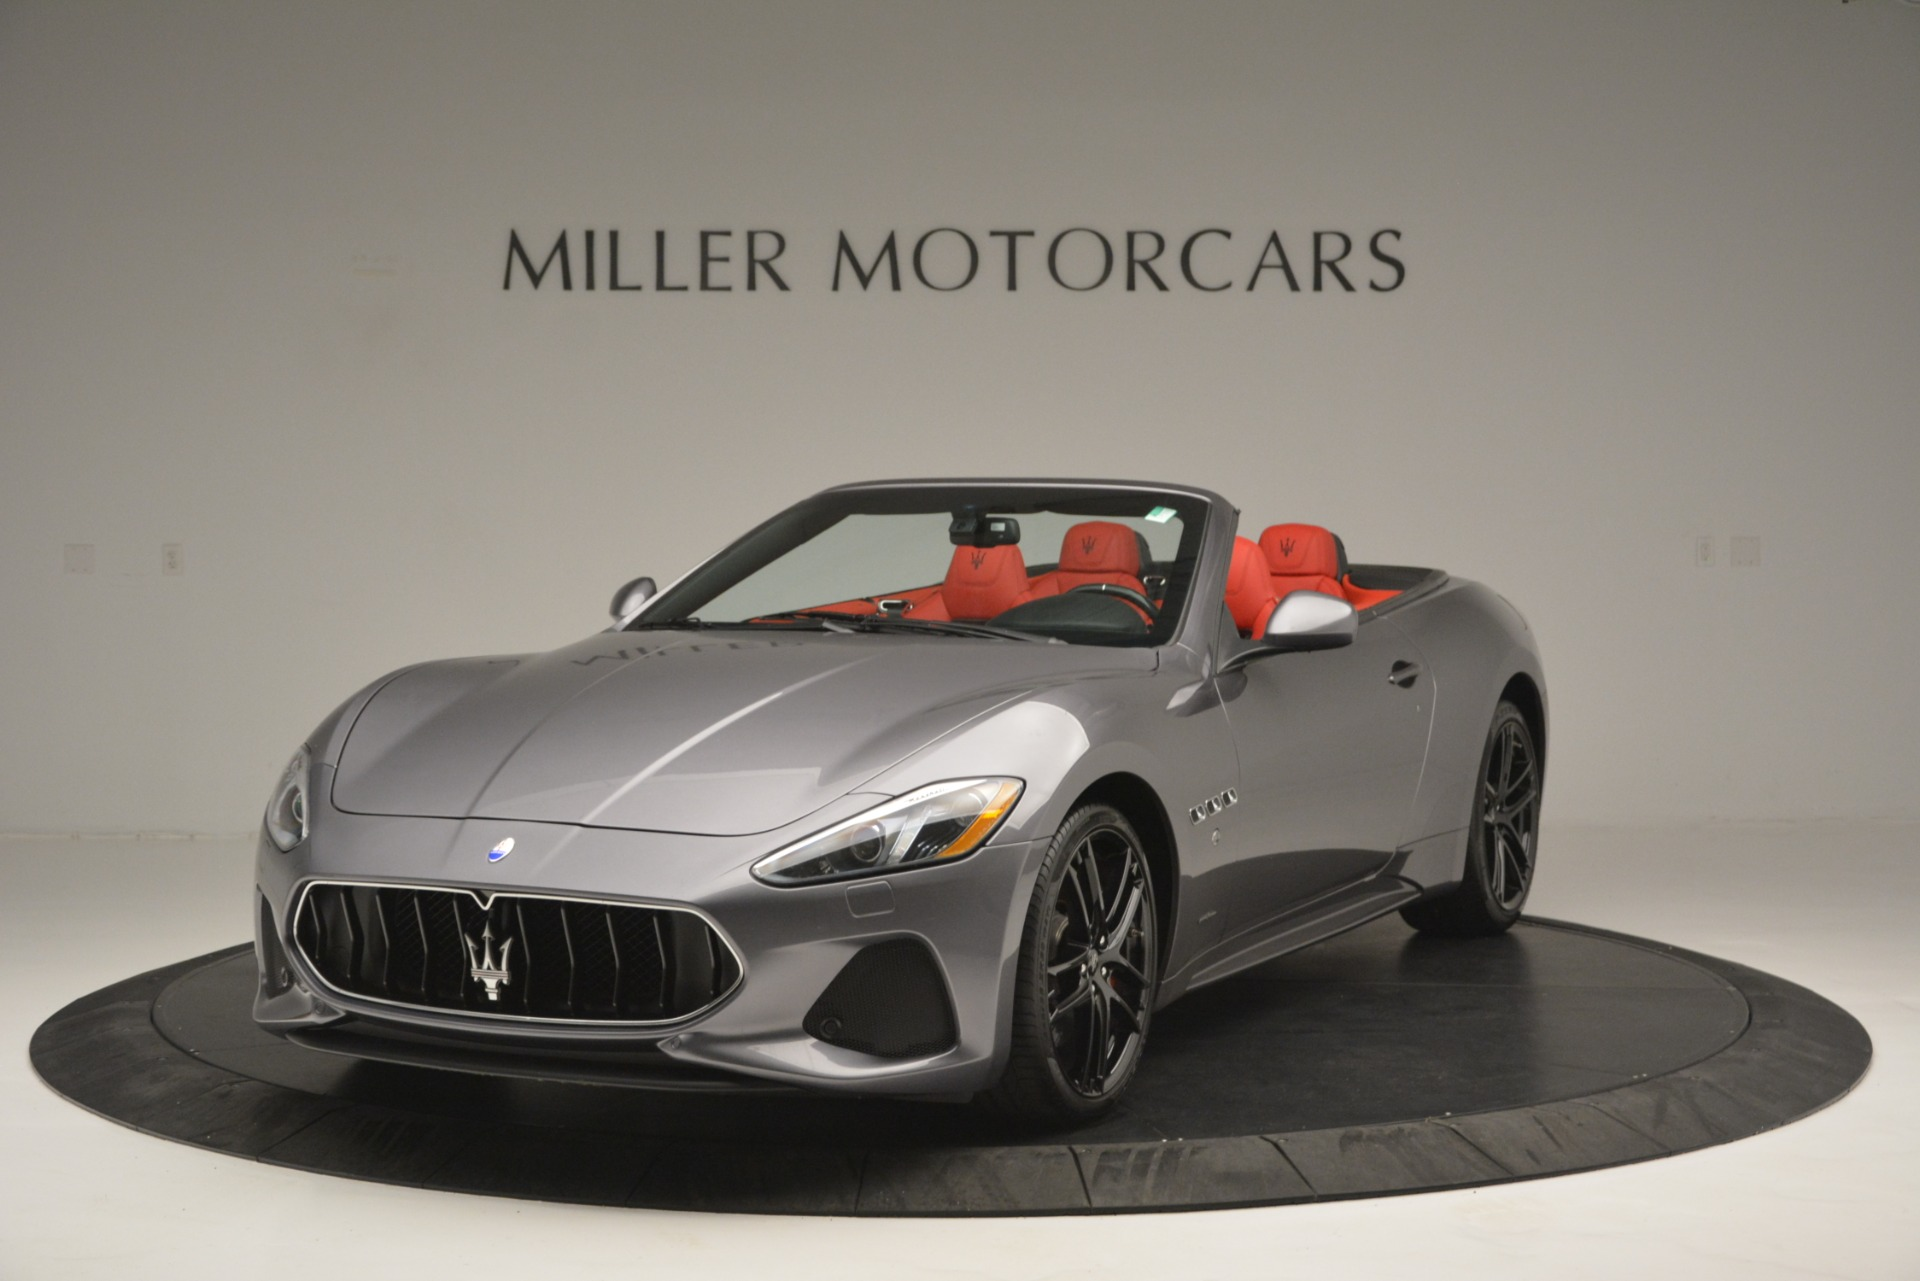 Used 2018 Maserati GranTurismo Sport for sale Sold at Bentley Greenwich in Greenwich CT 06830 1